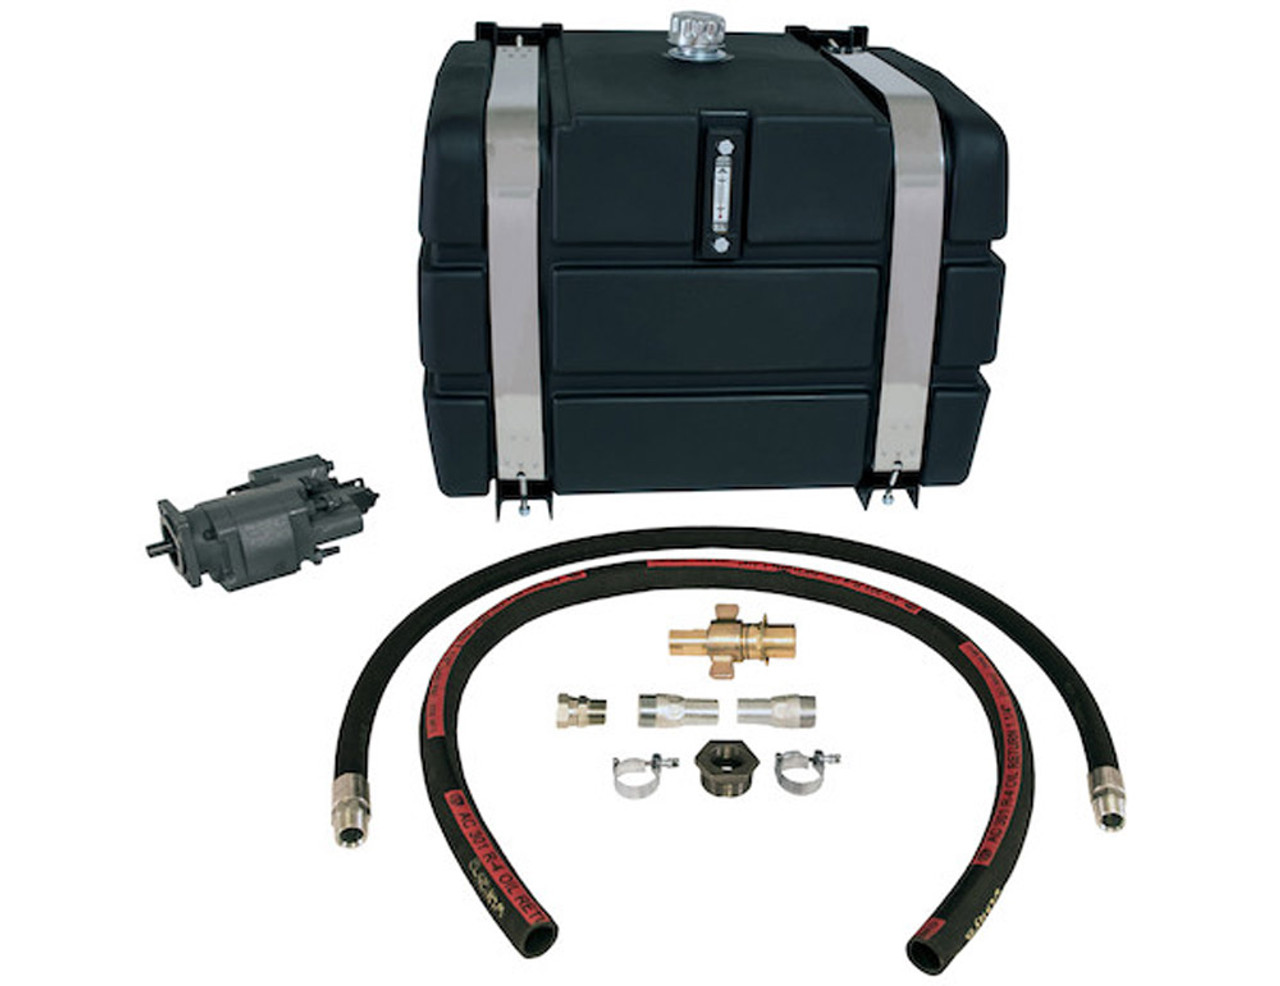 M-SMWLK50PDMCW BUYERS SALTDOGG 50 Gallon Side-Mount Reservoir/Direct Mount Pump Wetline Kit